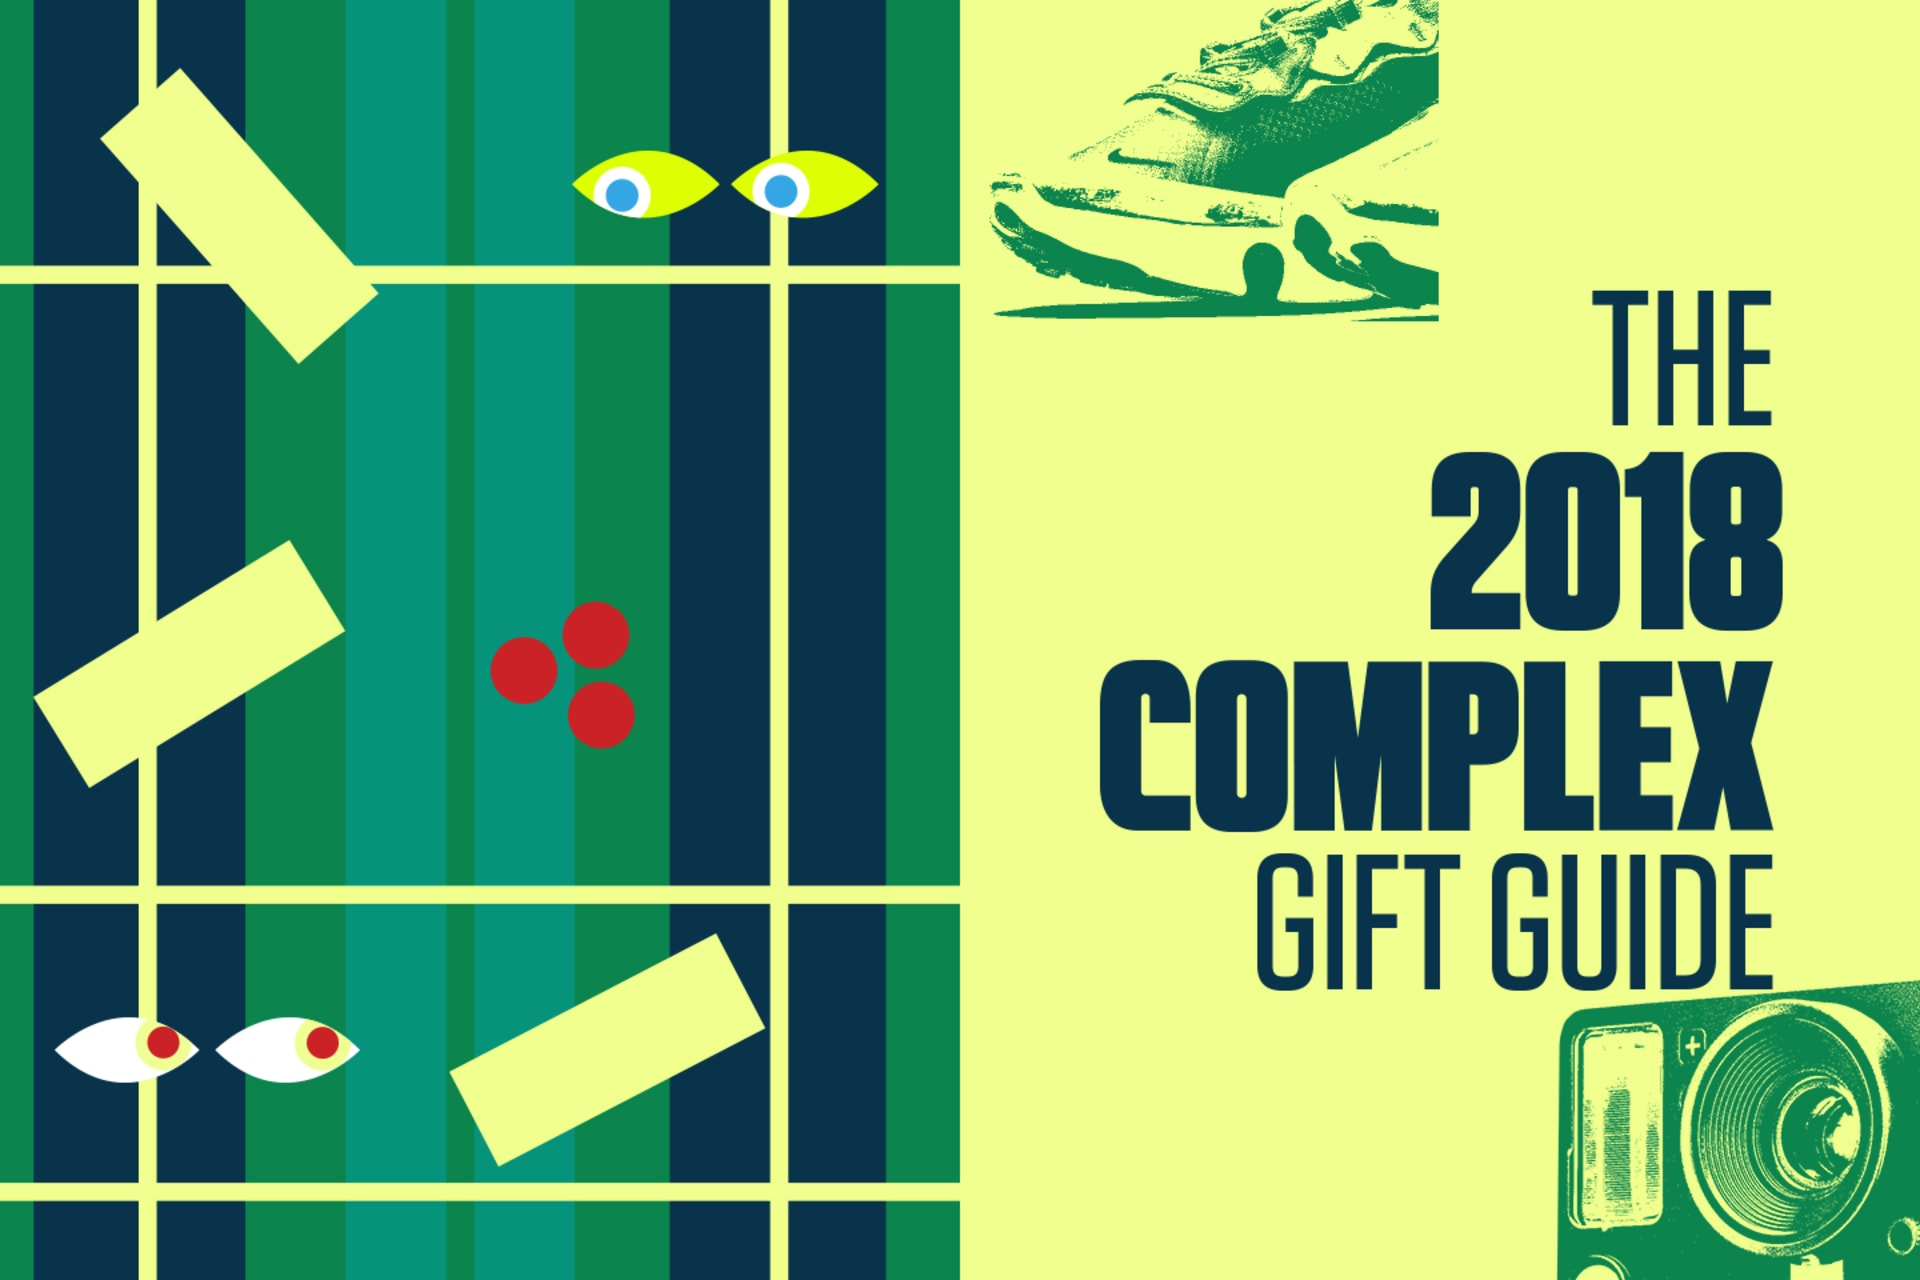 Complex 2018 gift guide